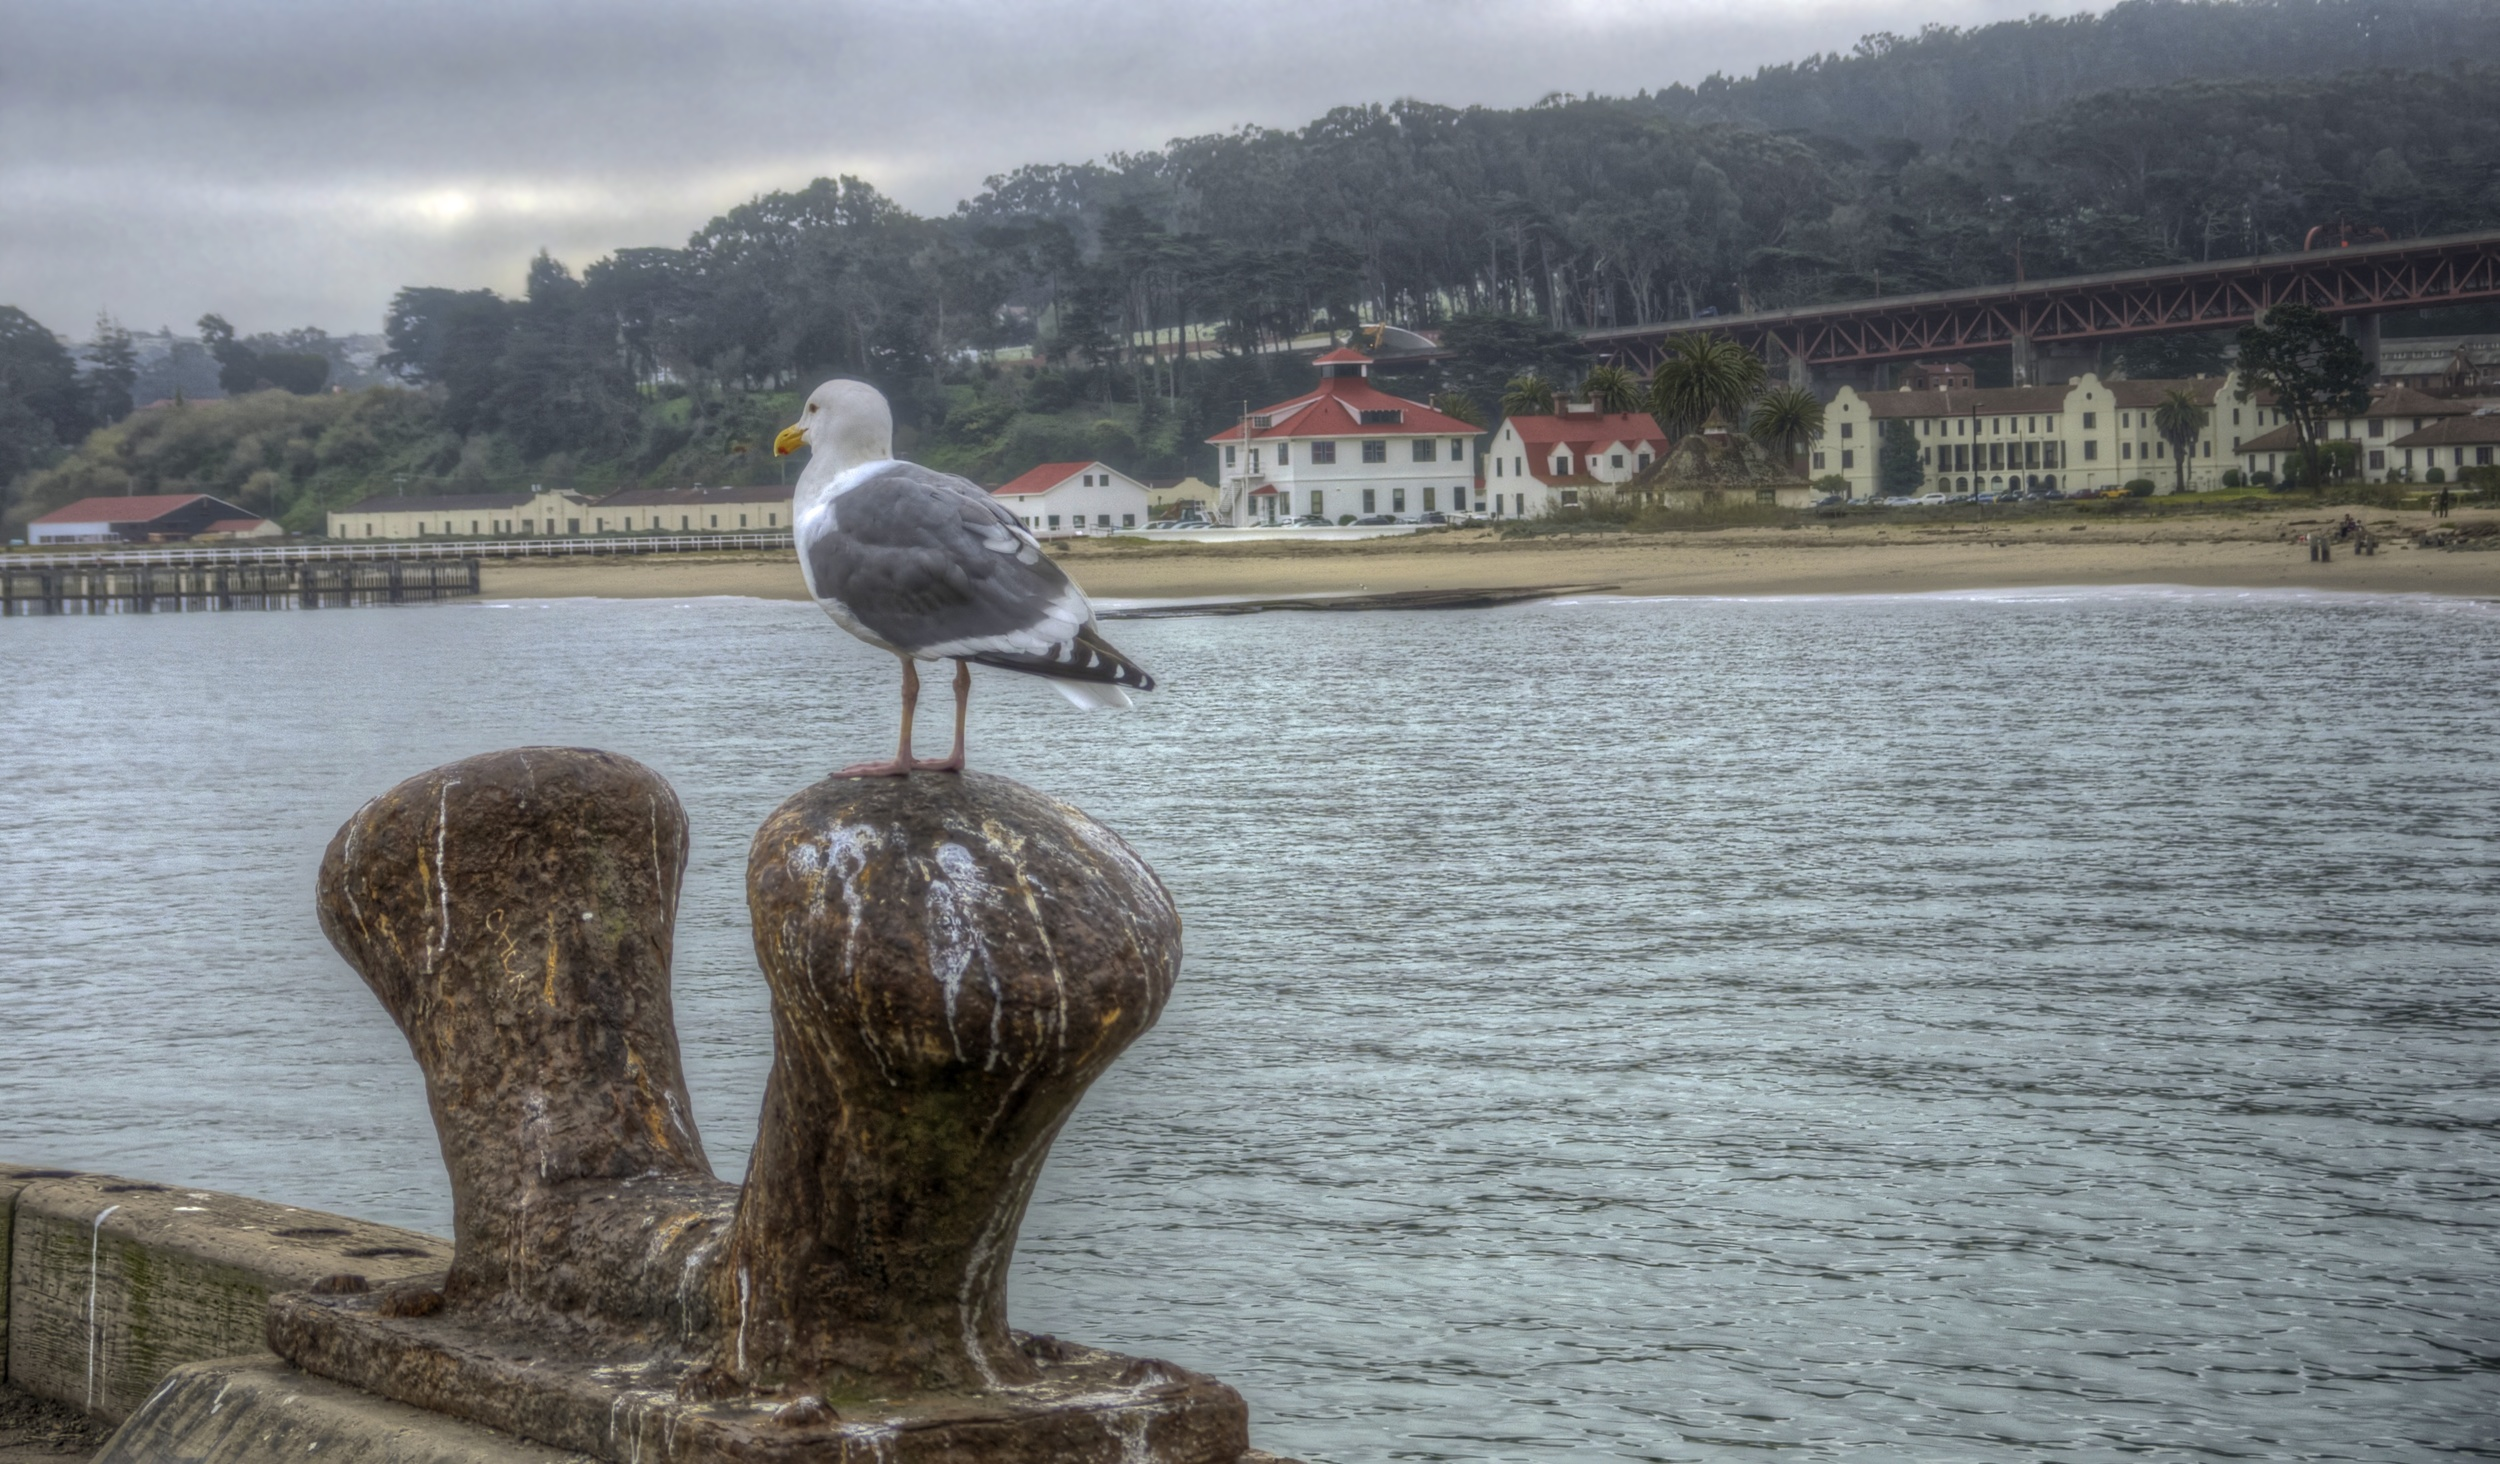 Seagull, with Crissy Field in background.